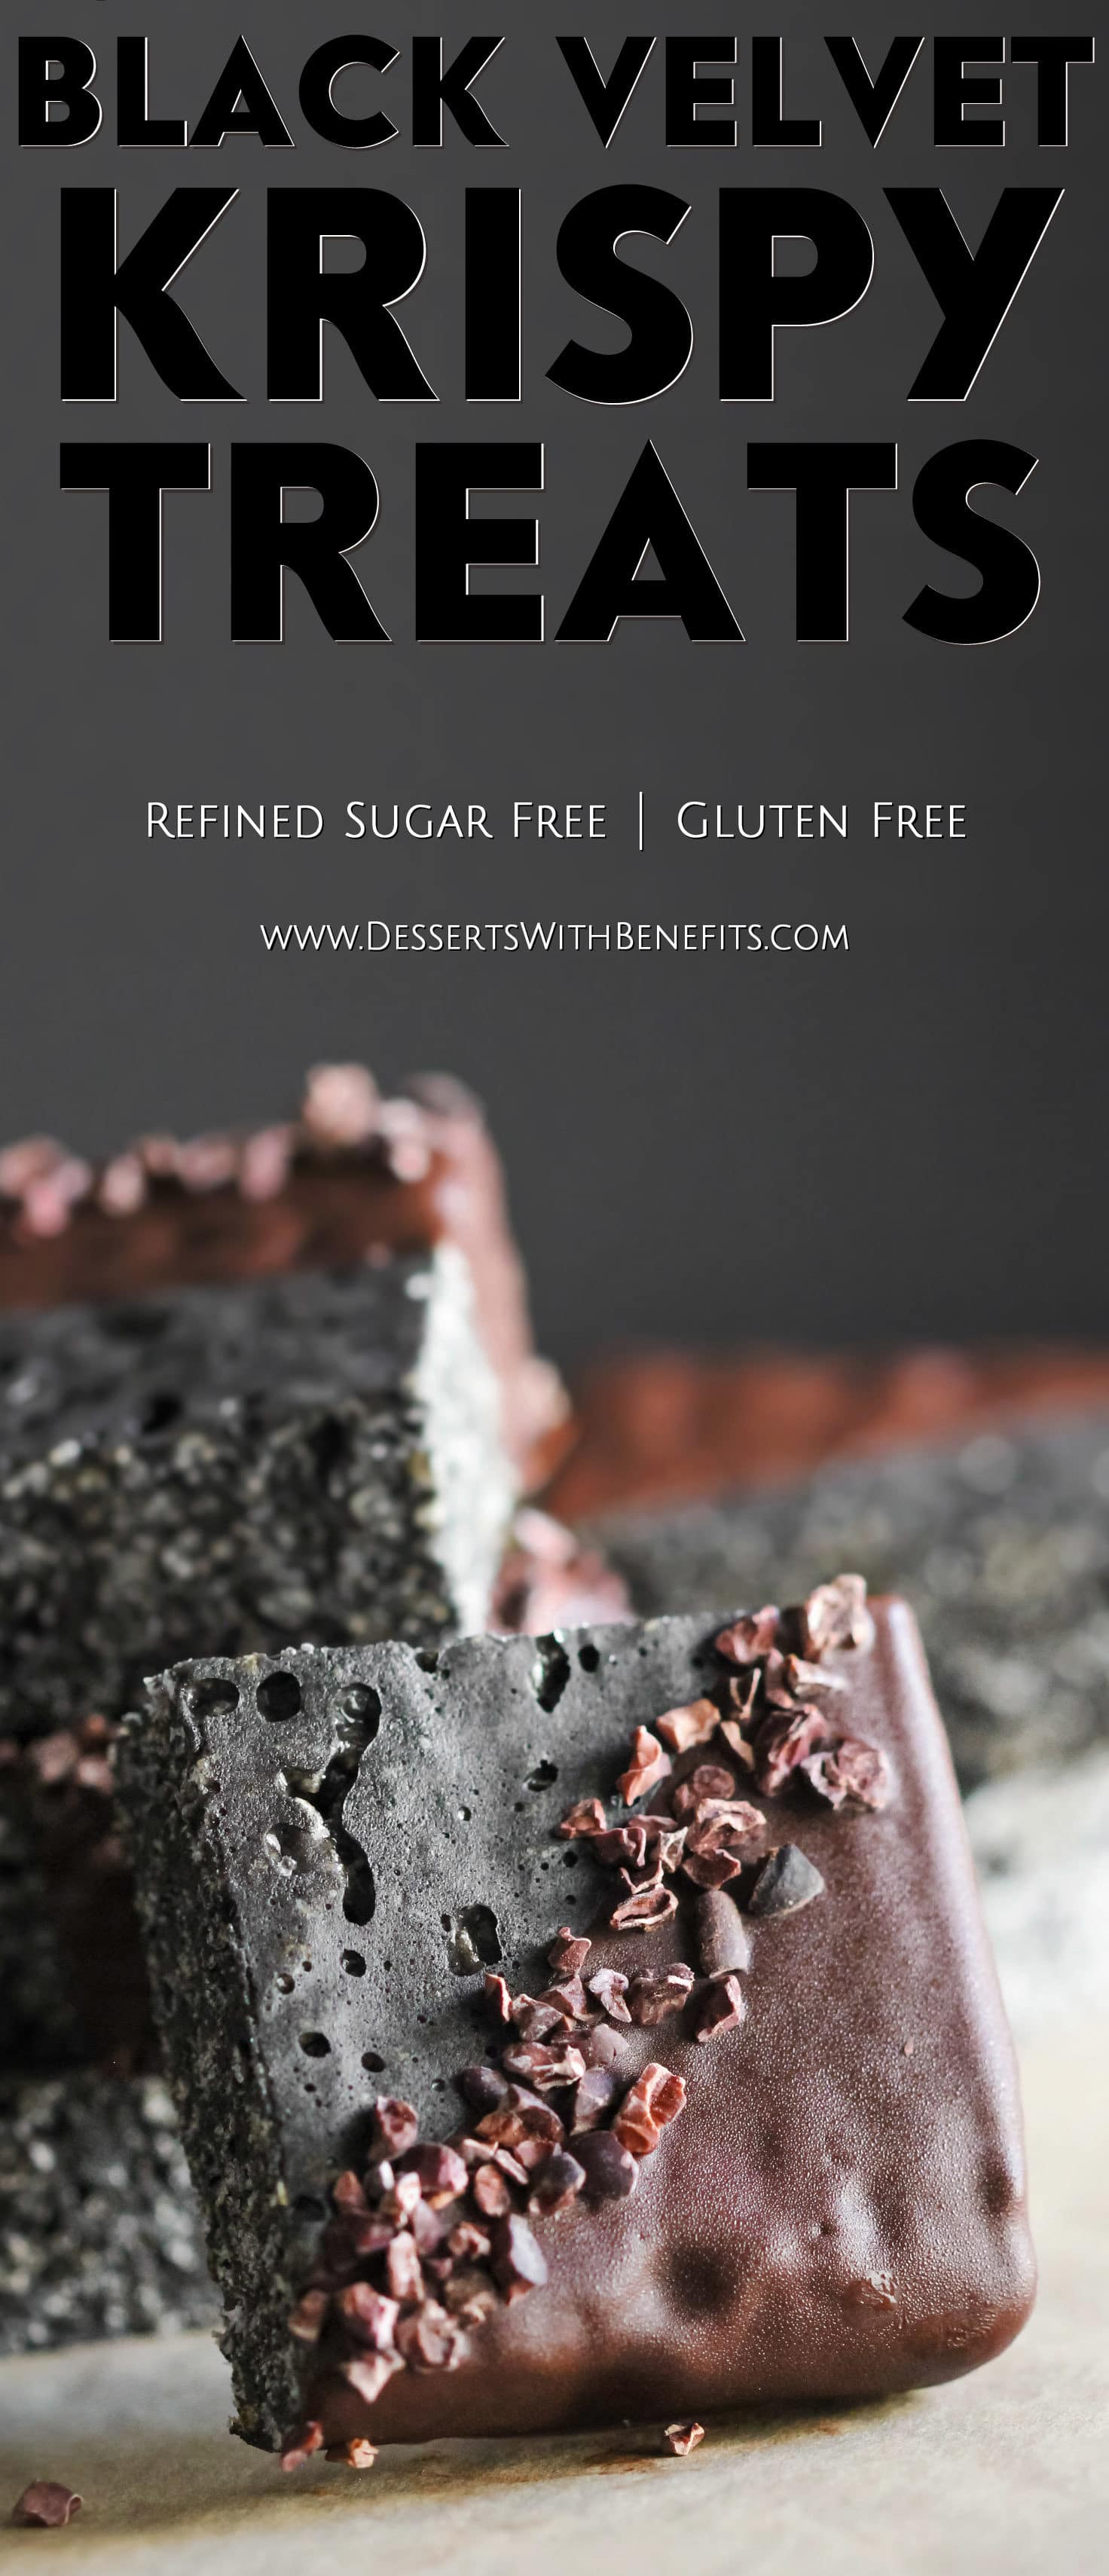 I bet you've never seen Krispy Treats like THESE before! These Healthy Black Velvet Krispy Treats are chewy, crunchy, sweet, and chocolatey. Flavored like your classic red velvet dessert with both vanilla and a hint of chocolate... only this one is black instead of red! Healthy Dessert Recipes at the Desserts With Benefits Blog